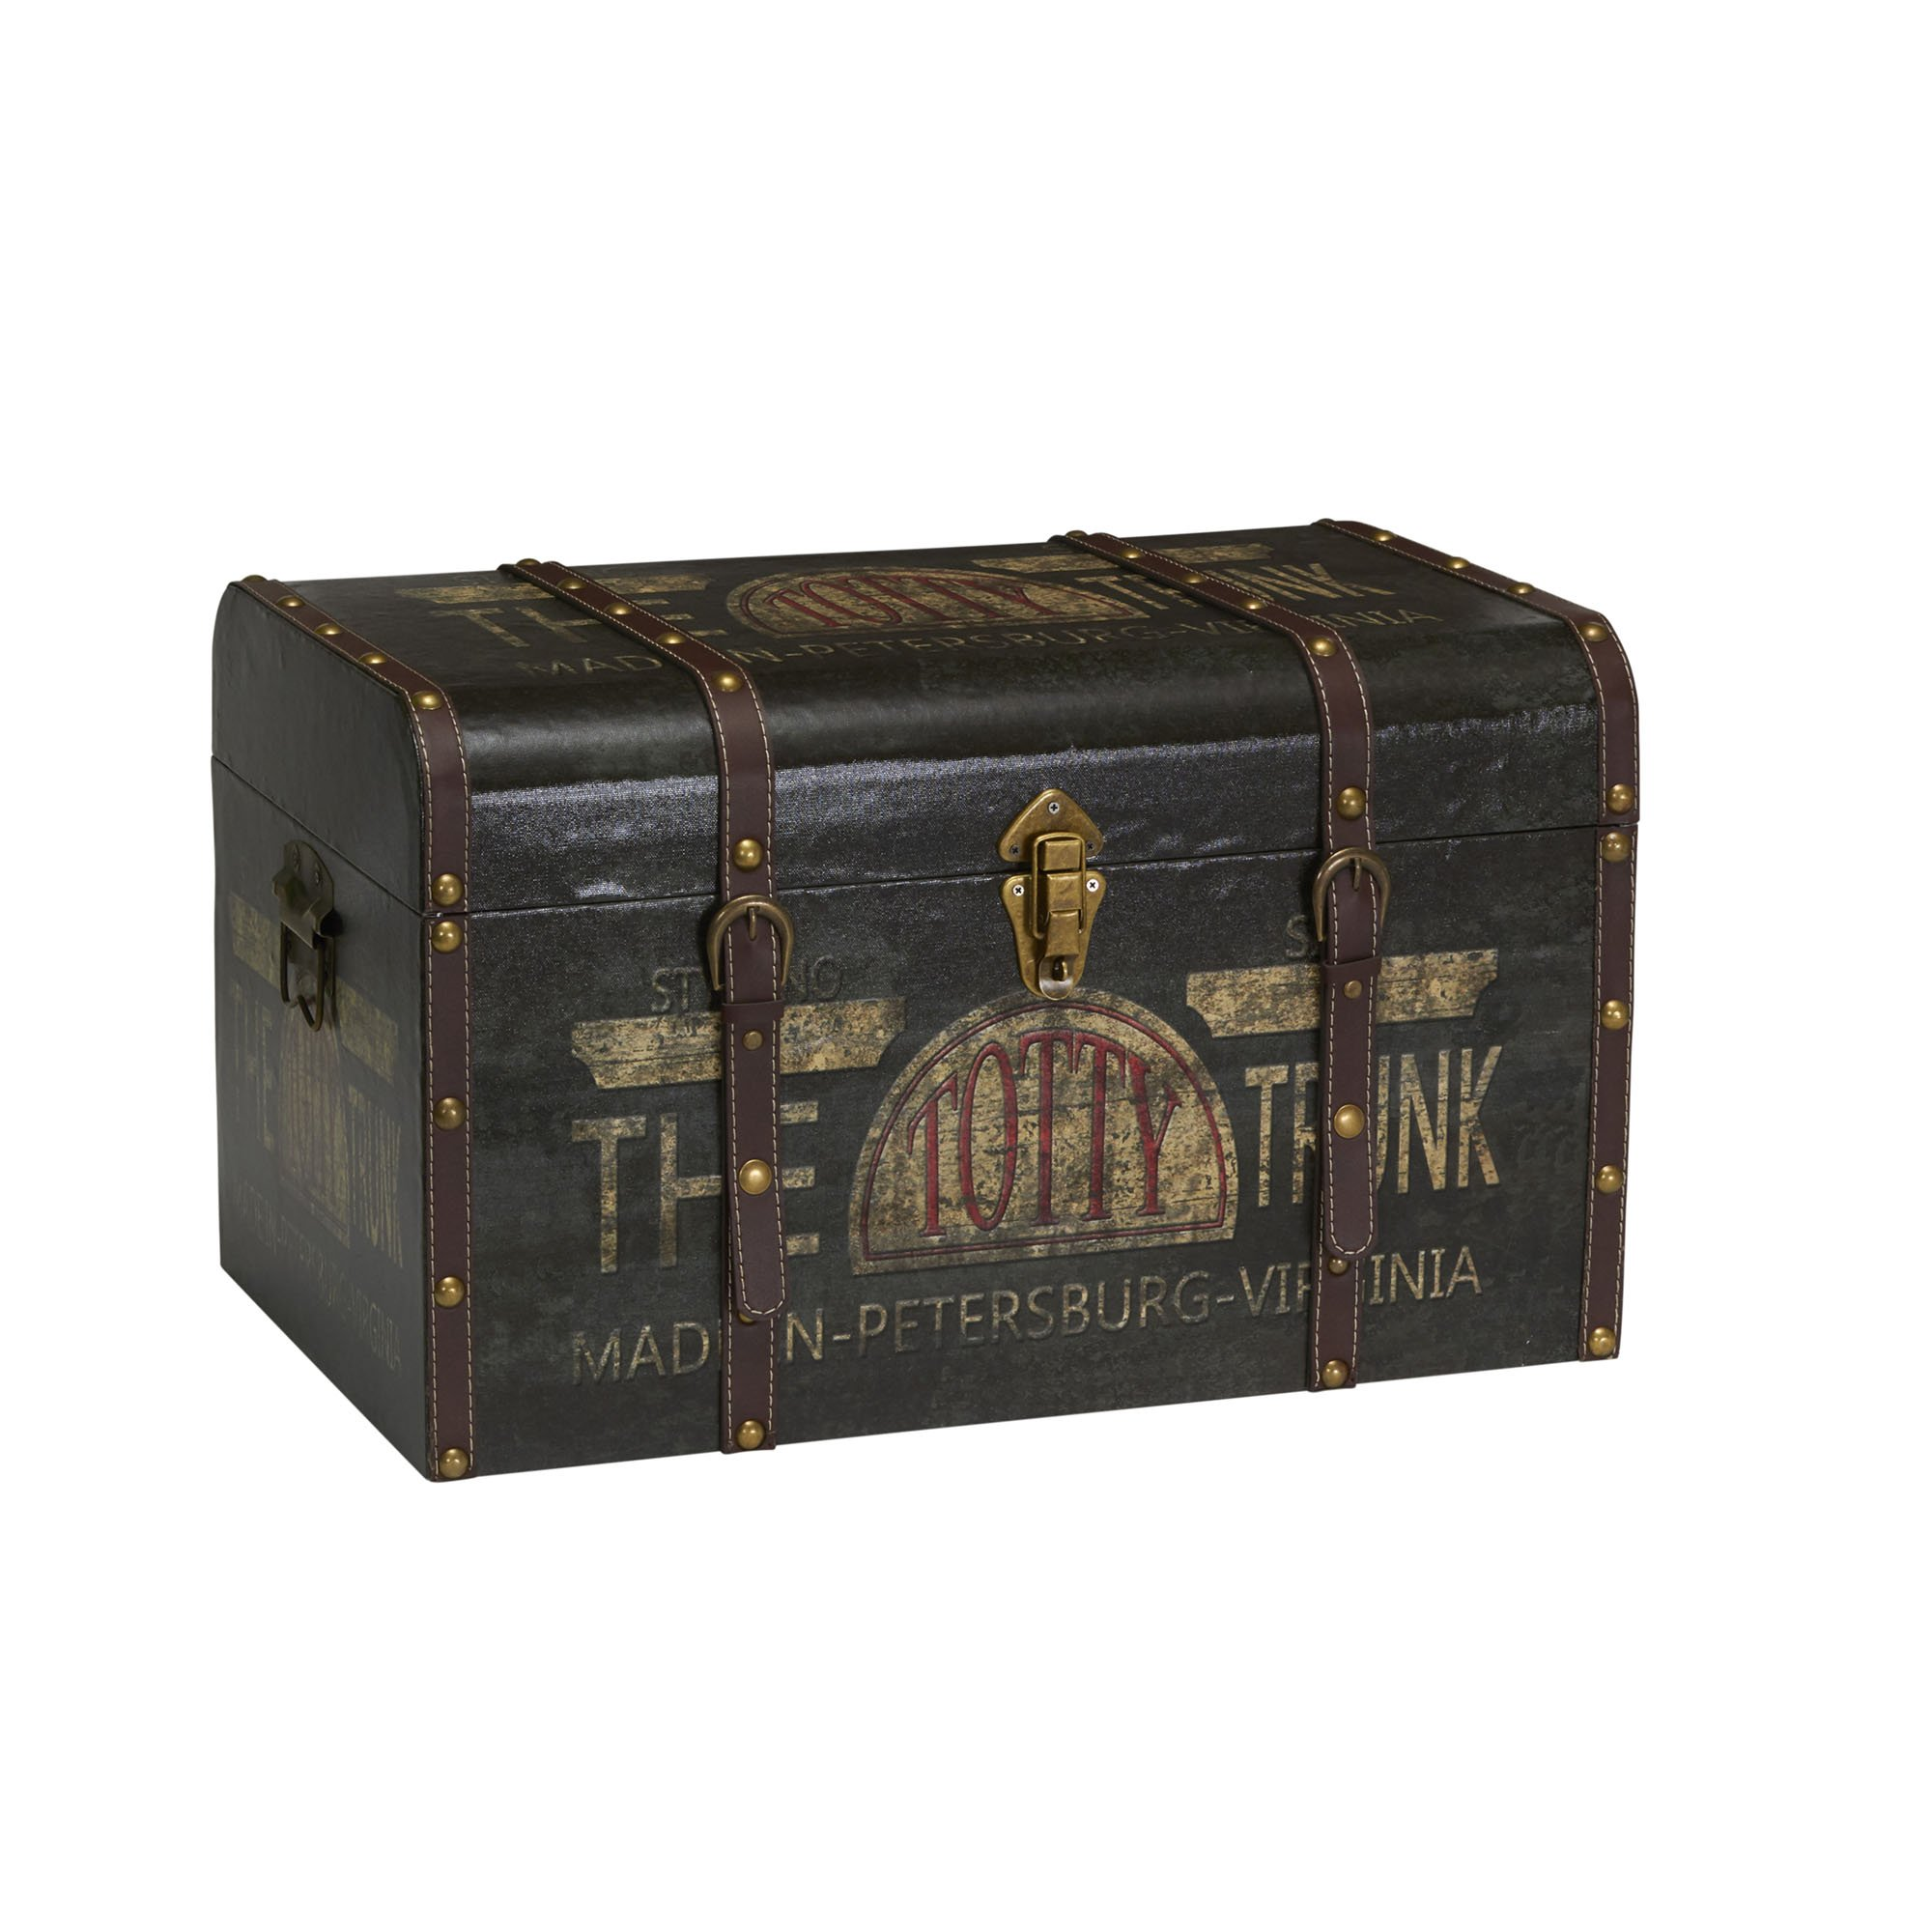 Household Essentials 9243-1 Large Vintage Decorative Home Storage Trunk - Luggage Style by Household Essentials